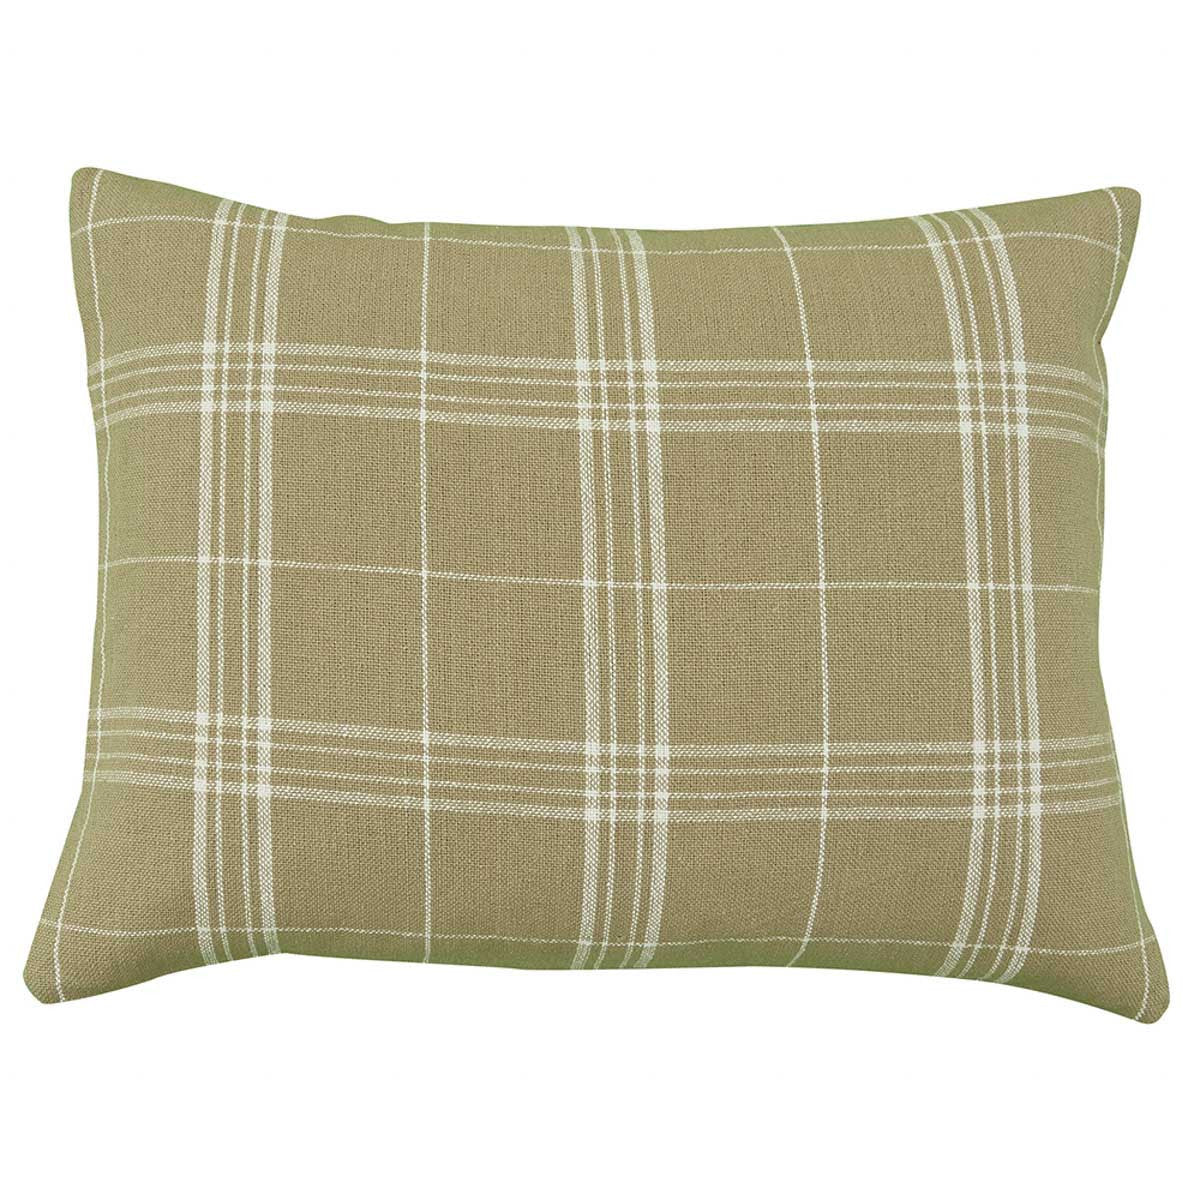 FIELDSTONE PLAID STANDARD SHAM - CREAM